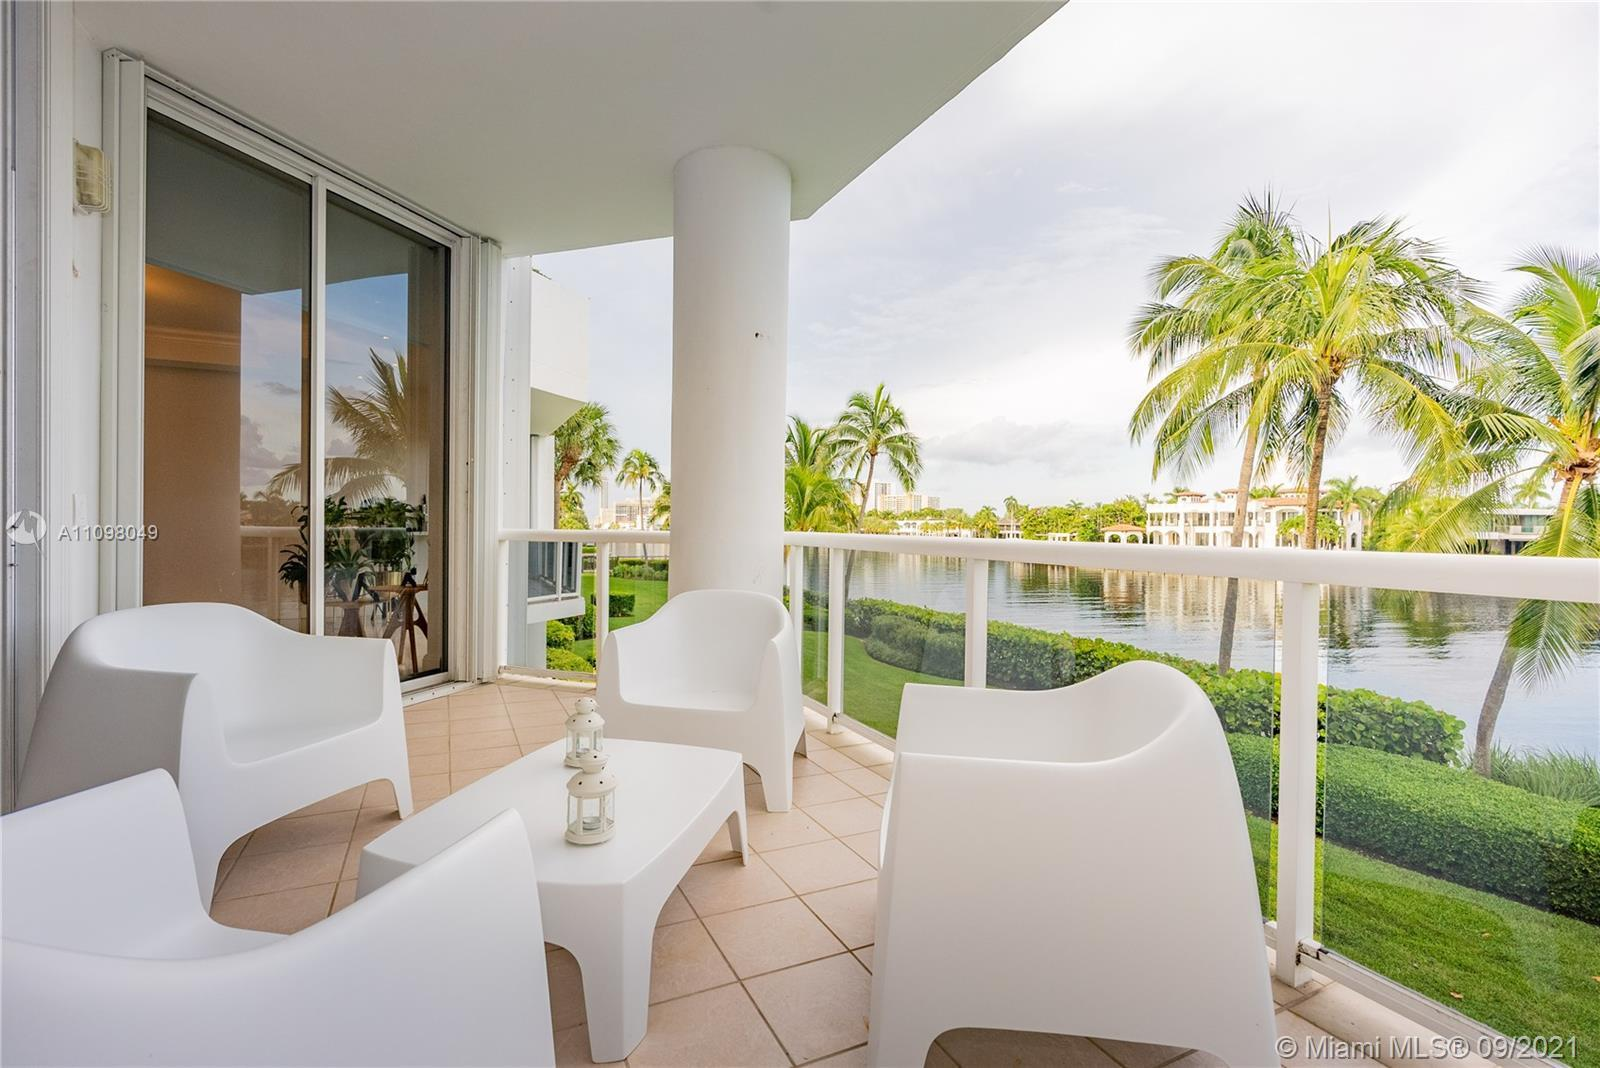 Do you want to see real dolphins and manatees from your window? Do you want to hear the ocean and en